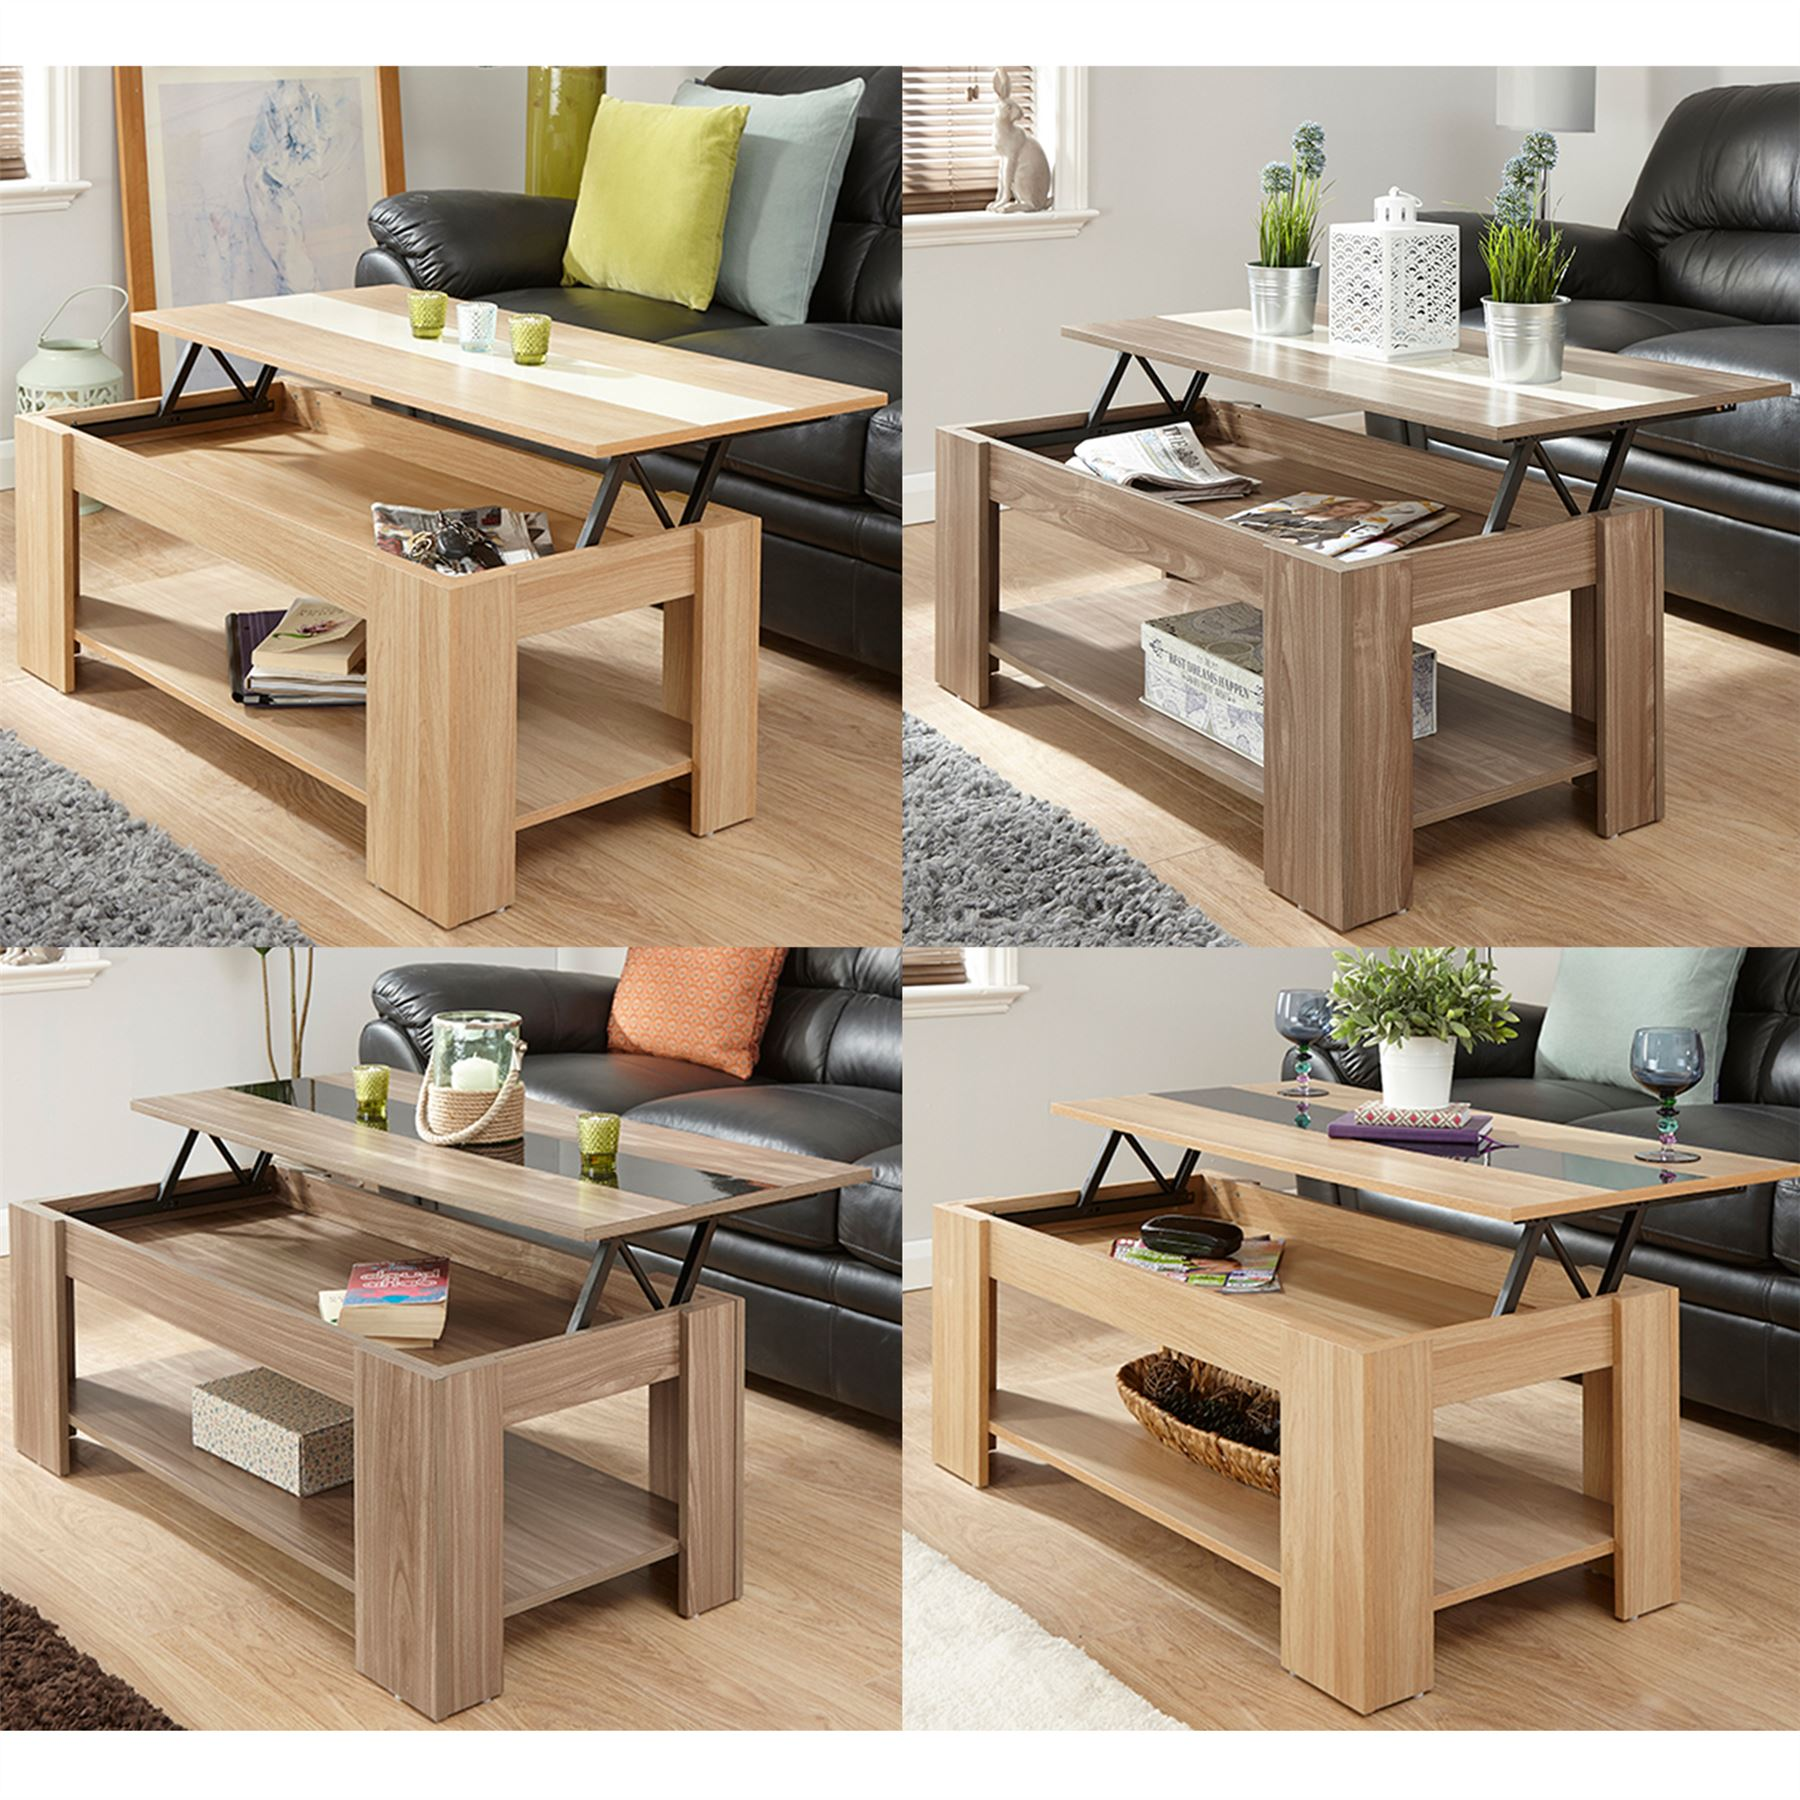 LIFT UP COFFEE TABLE GLOSS STRIP TEA ESPRESSO LOUNGE TABLE WITH